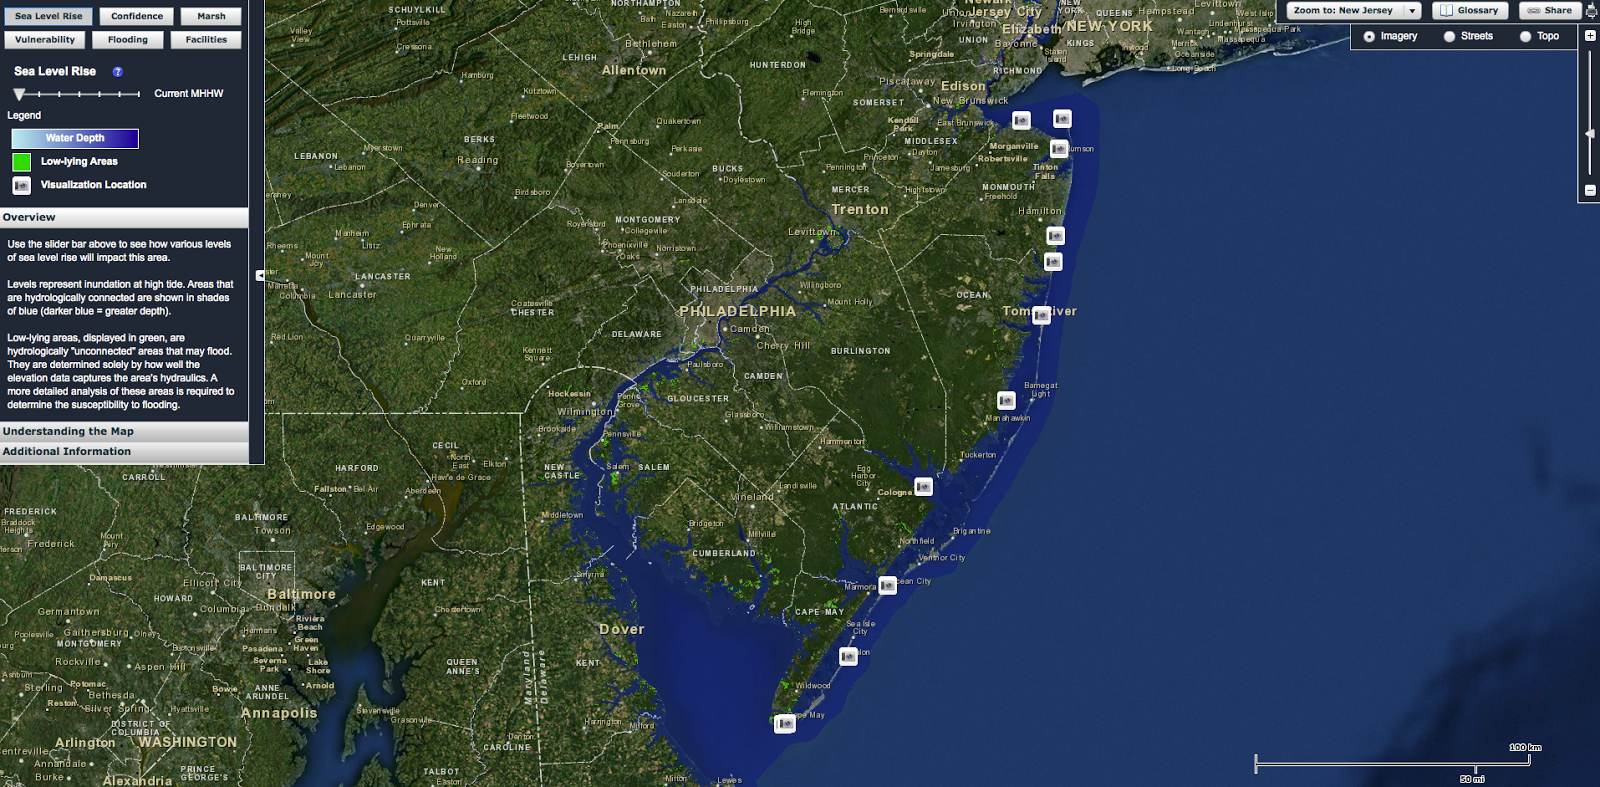 geogarage interactive flood map predicts sea level rise